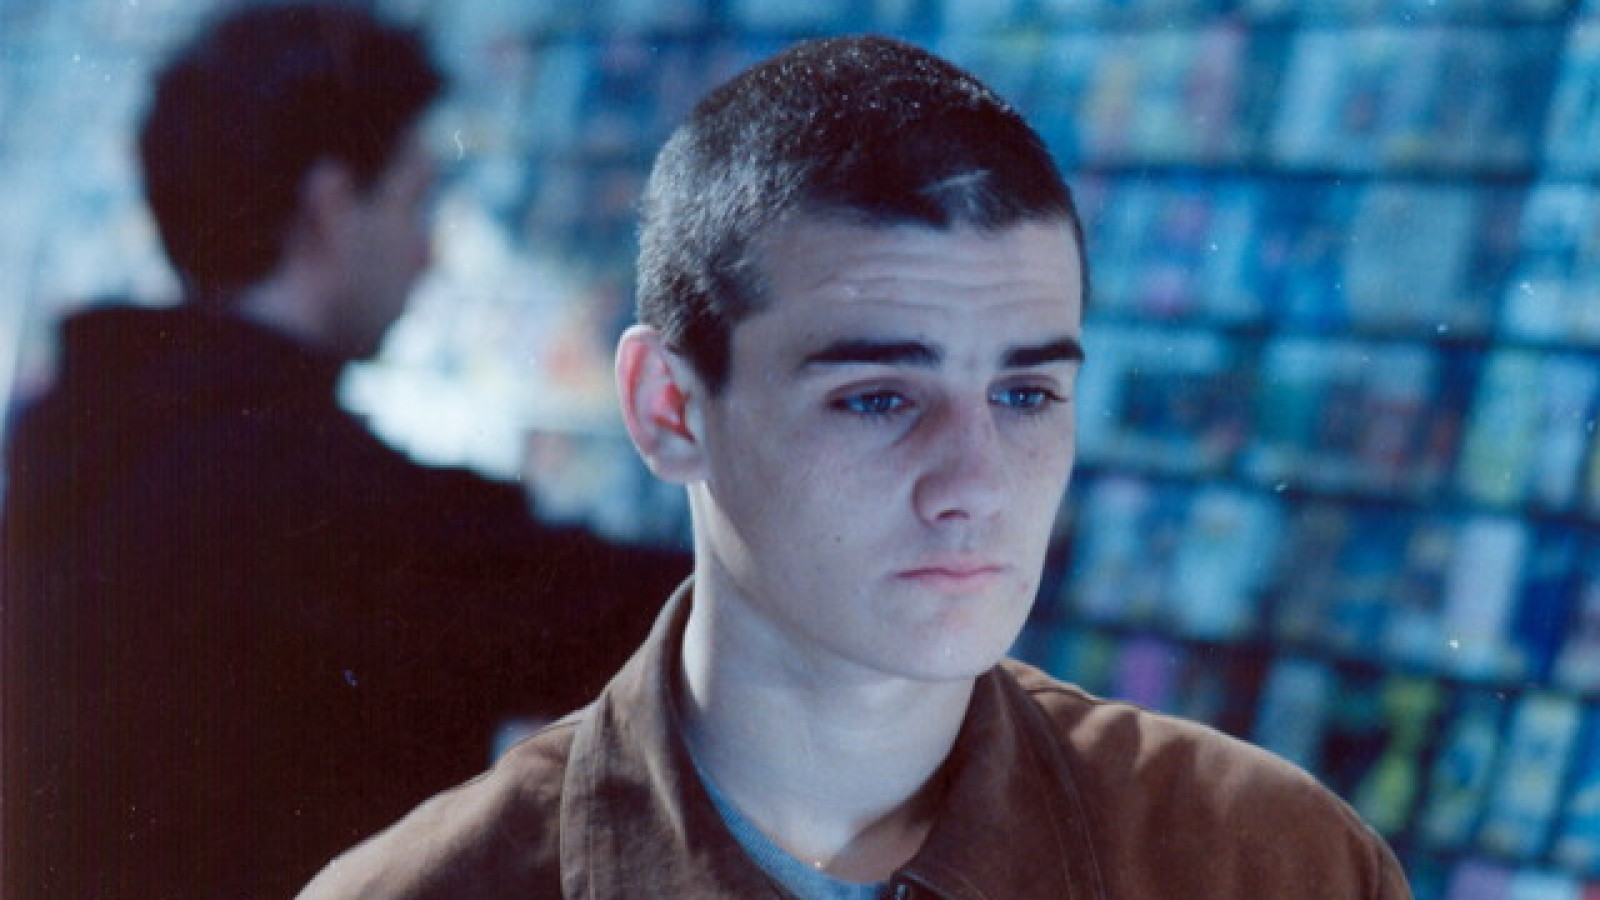 Ezequiel Cavia as Lucio in Rejtman's debut feature,  Rapado  (1992)